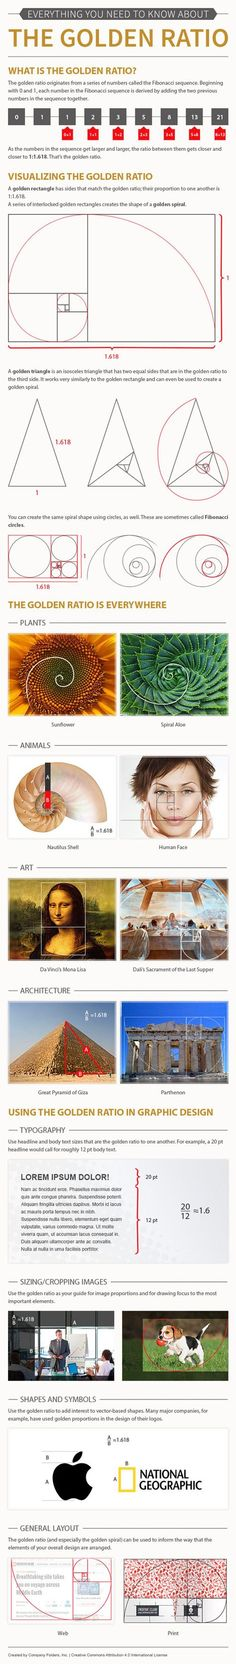 The golden ratio should not need any introduction to those who have studied math and design in school. Some designers apply these mathematical concepts to come up with more visually appealing works. This infographic from http://companyfolders.com covers a few golden ratio facts